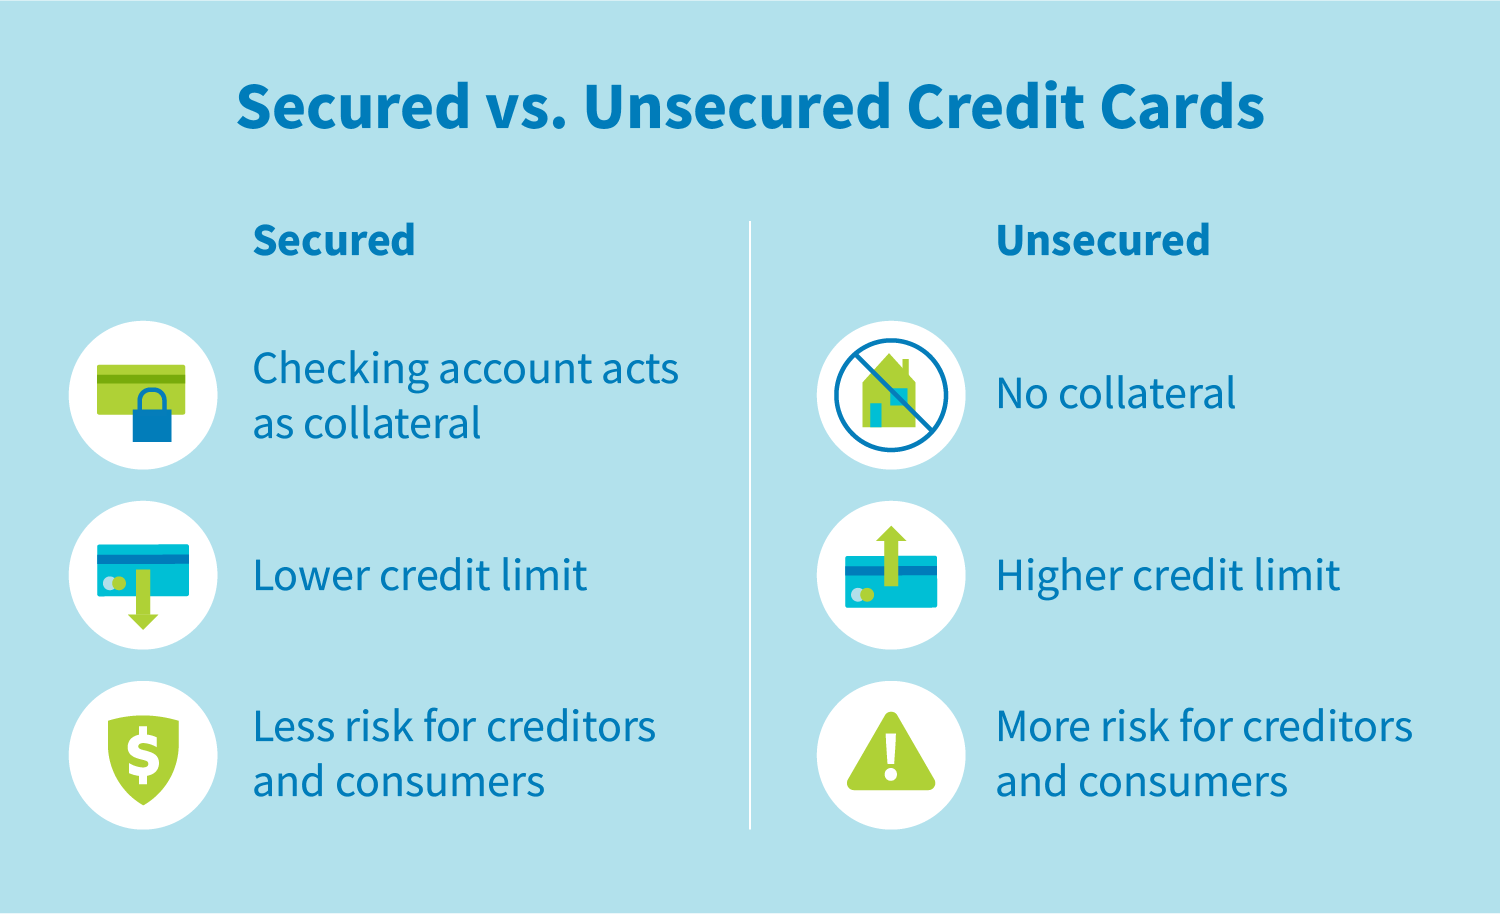 Secured vs. Unsecured Credit Cards. Secured: Checking account acts as collateral, lower credit limit, and less risk for creditors and consumers. Unsecured: No collateral, higher credit limit, and more risk for creditors and consumers.